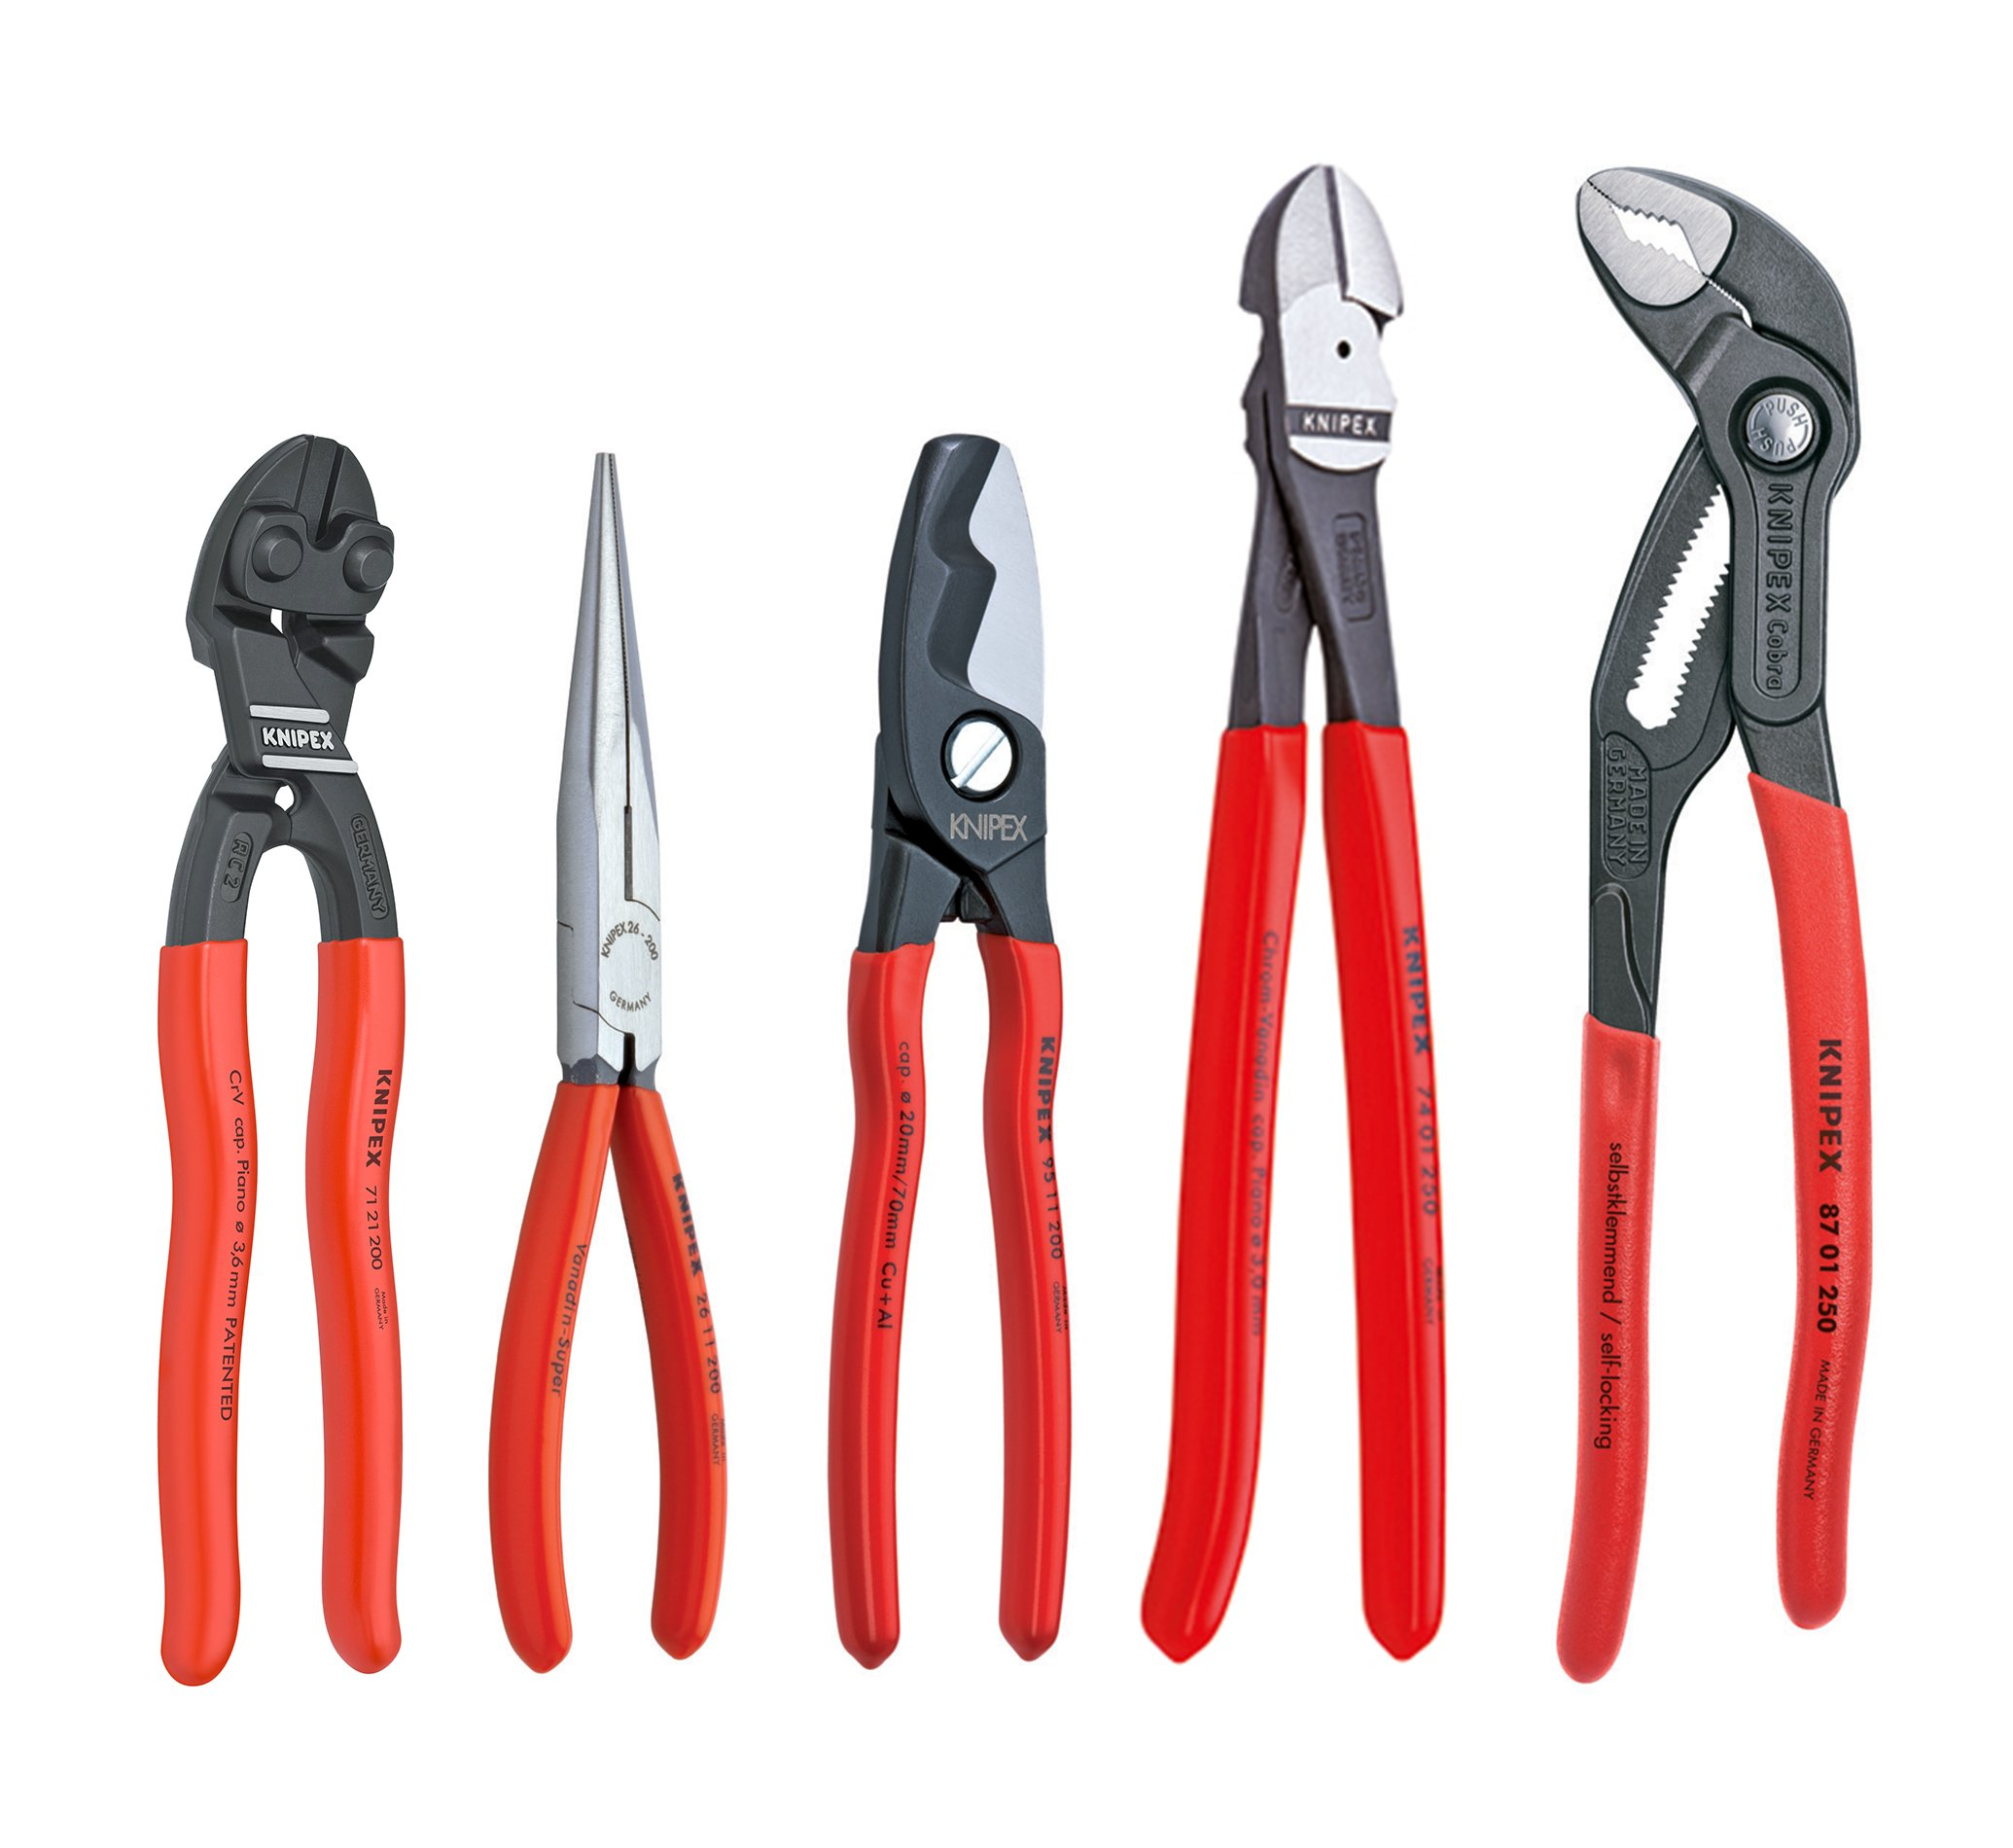 Knipex Tools 9K 00 80 108 US Cobra Cobalt Needle Nose Shears and Cutters Pliers Set (5 Piece)